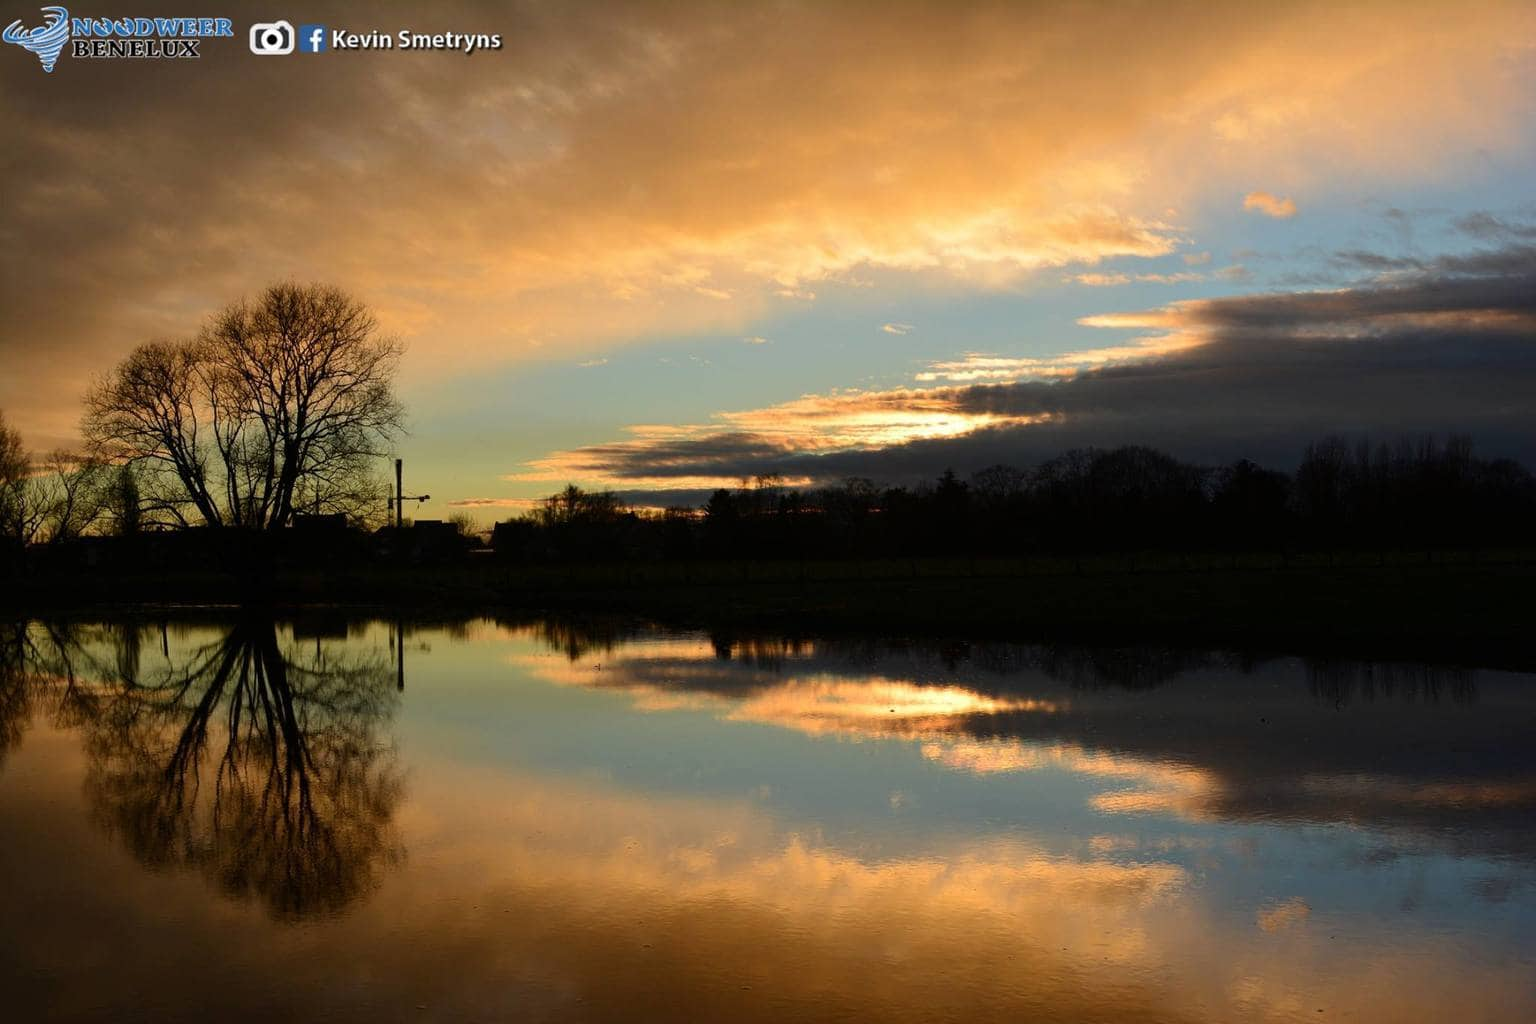 Sunset after a day of heavy rainfall! Gijzegem, Belgium, january 8th 2015.